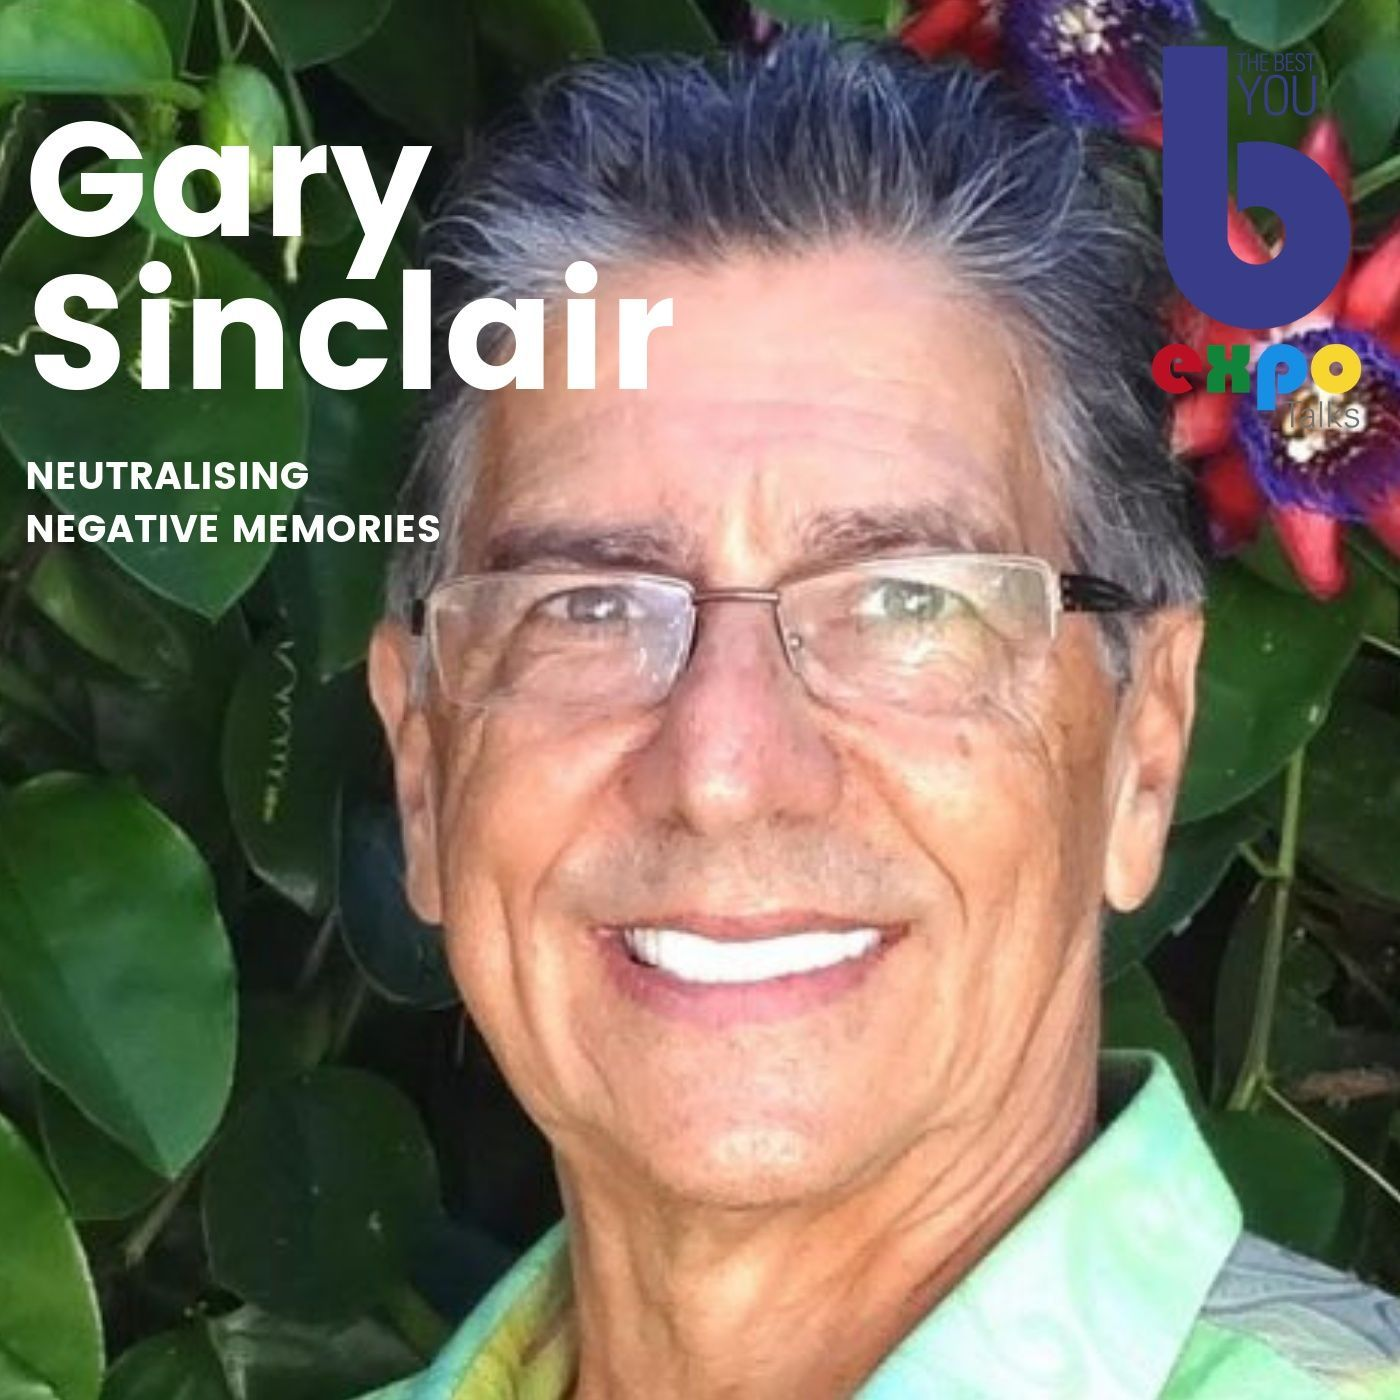 Listen to Gary Sinclair at The Best You EXPO